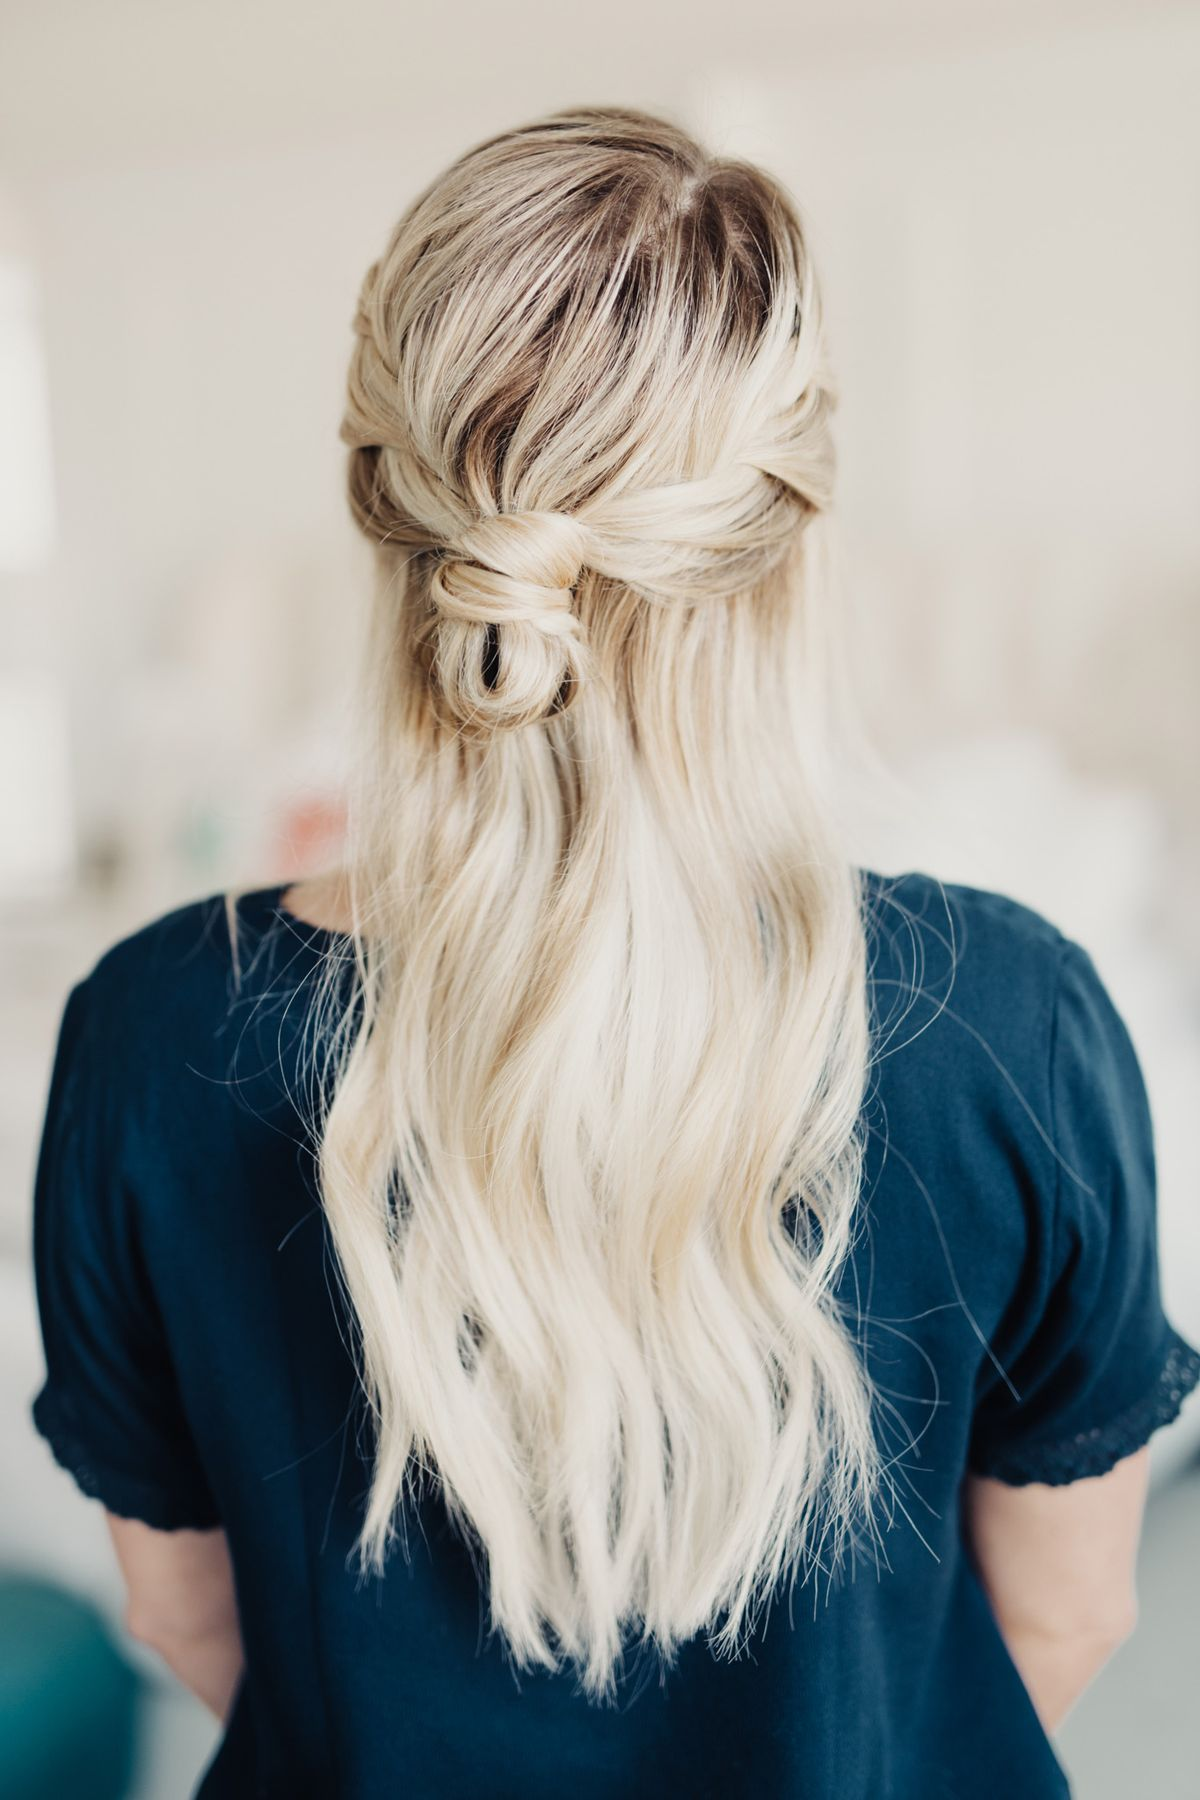 Hey everybody!!! I've got a really simple, but very beautiful hair tutorial for you today! Valentines Day is around the corner and I thought it'd be fun to share something a little bit fancier! I'll leave text instructions below for ya, it's super easy. I hope you guys love the romantic french braided bun!